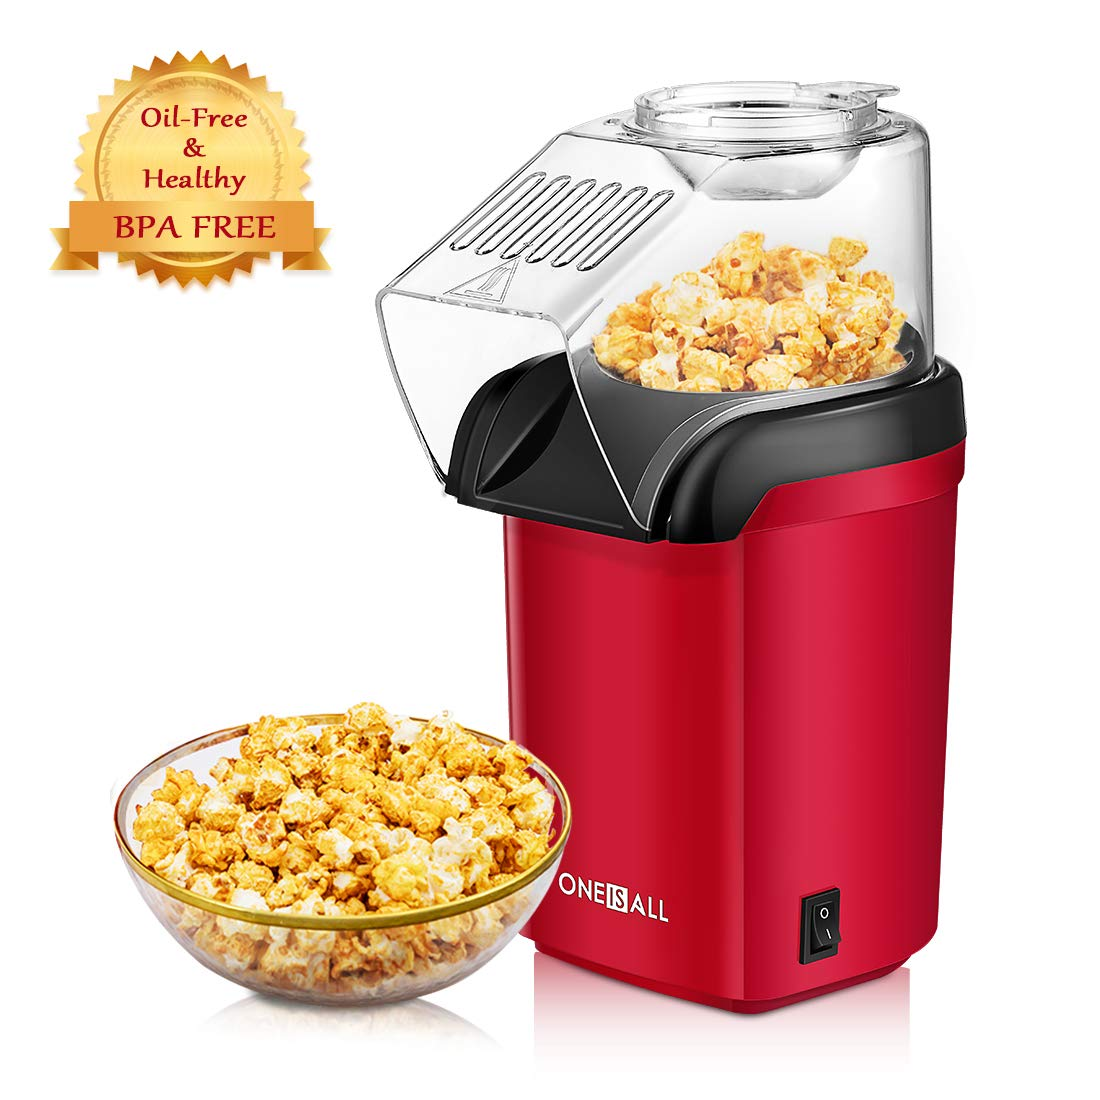 Popcorn Maker, Oneisall 1200W Fast Popcorn Machine, Hot Air Popcorn Popper with Wide Mouth Design, Oil-Free, Including Measuring Cup and Removable Lid, FDA Approved by oneisall